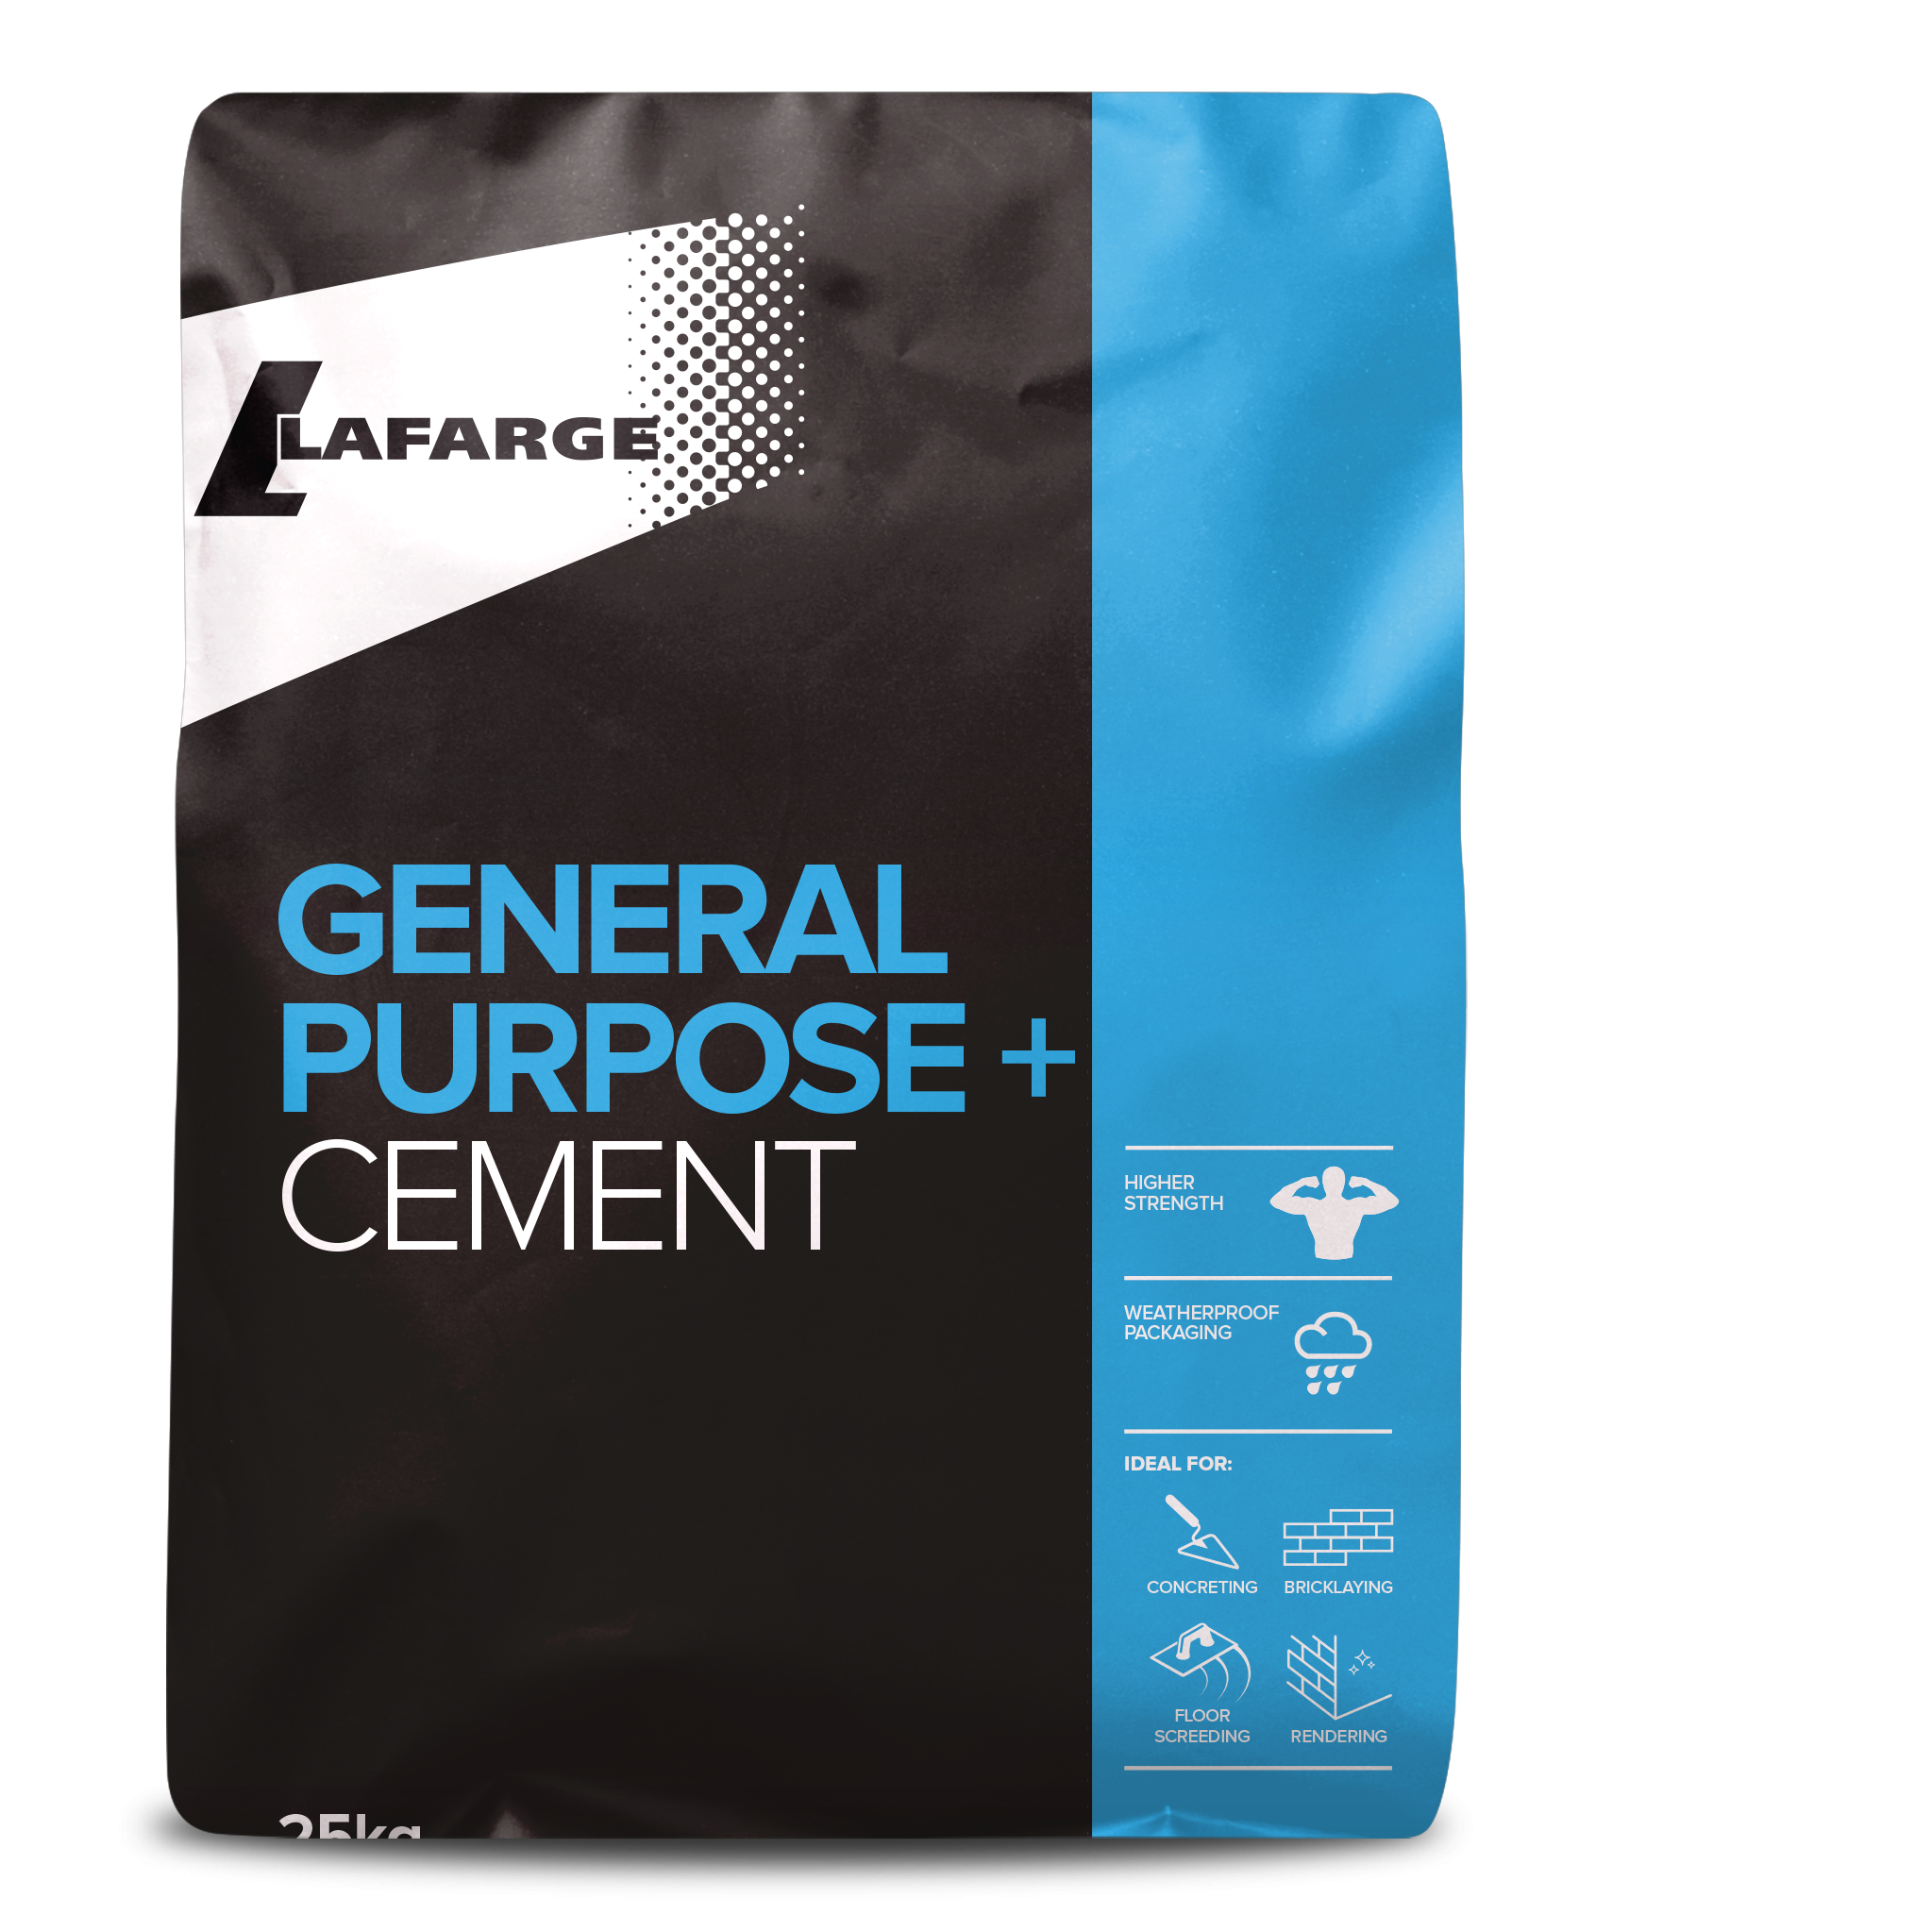 Lafarge General Purpose + 42.5N Plastic Cement 25kg Bag